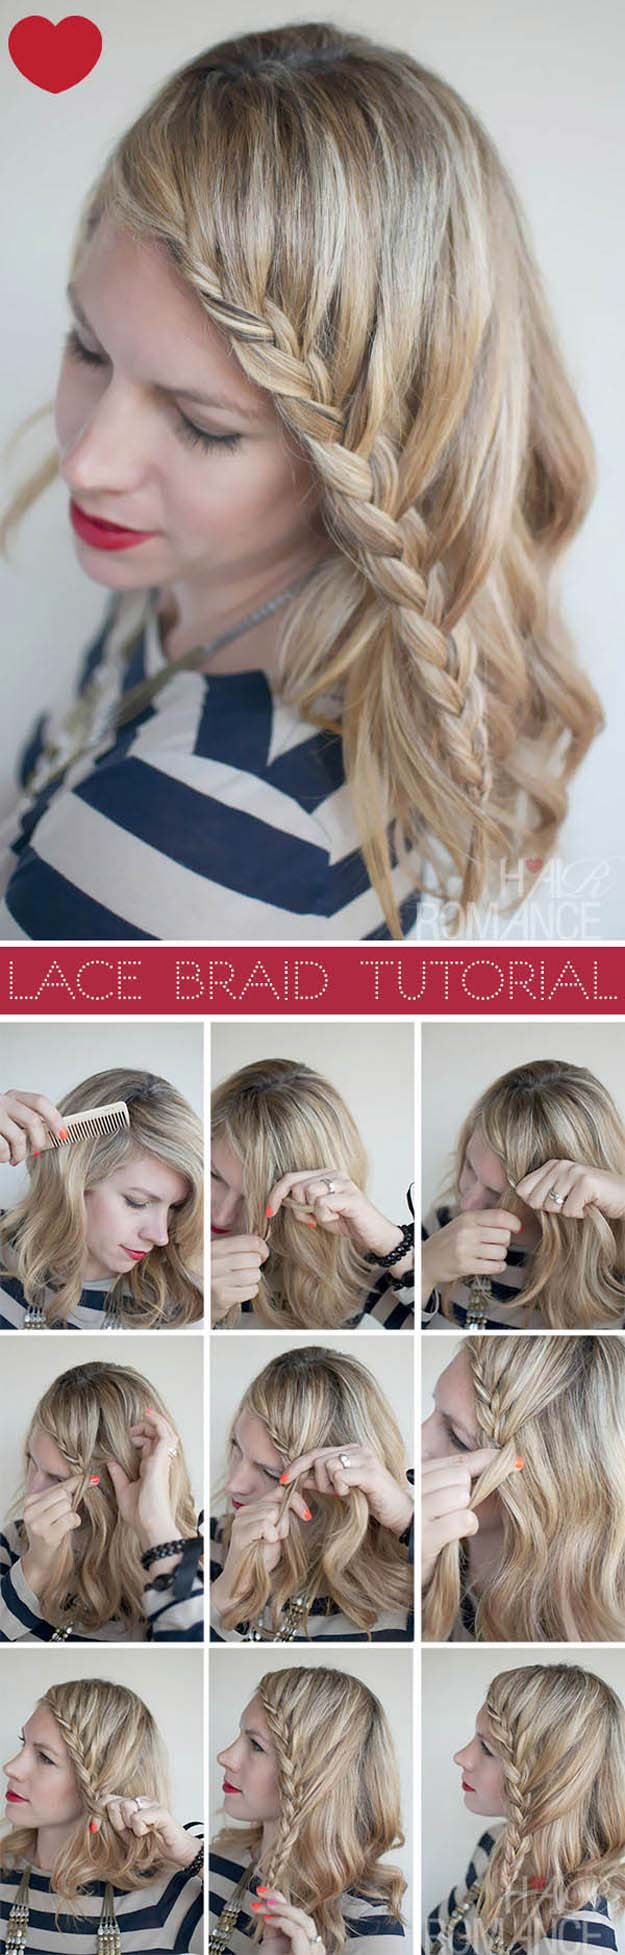 Tips To Instantly Make Your Hair Look Thicker - Lace Braid Hairstyle Tutorial - ...